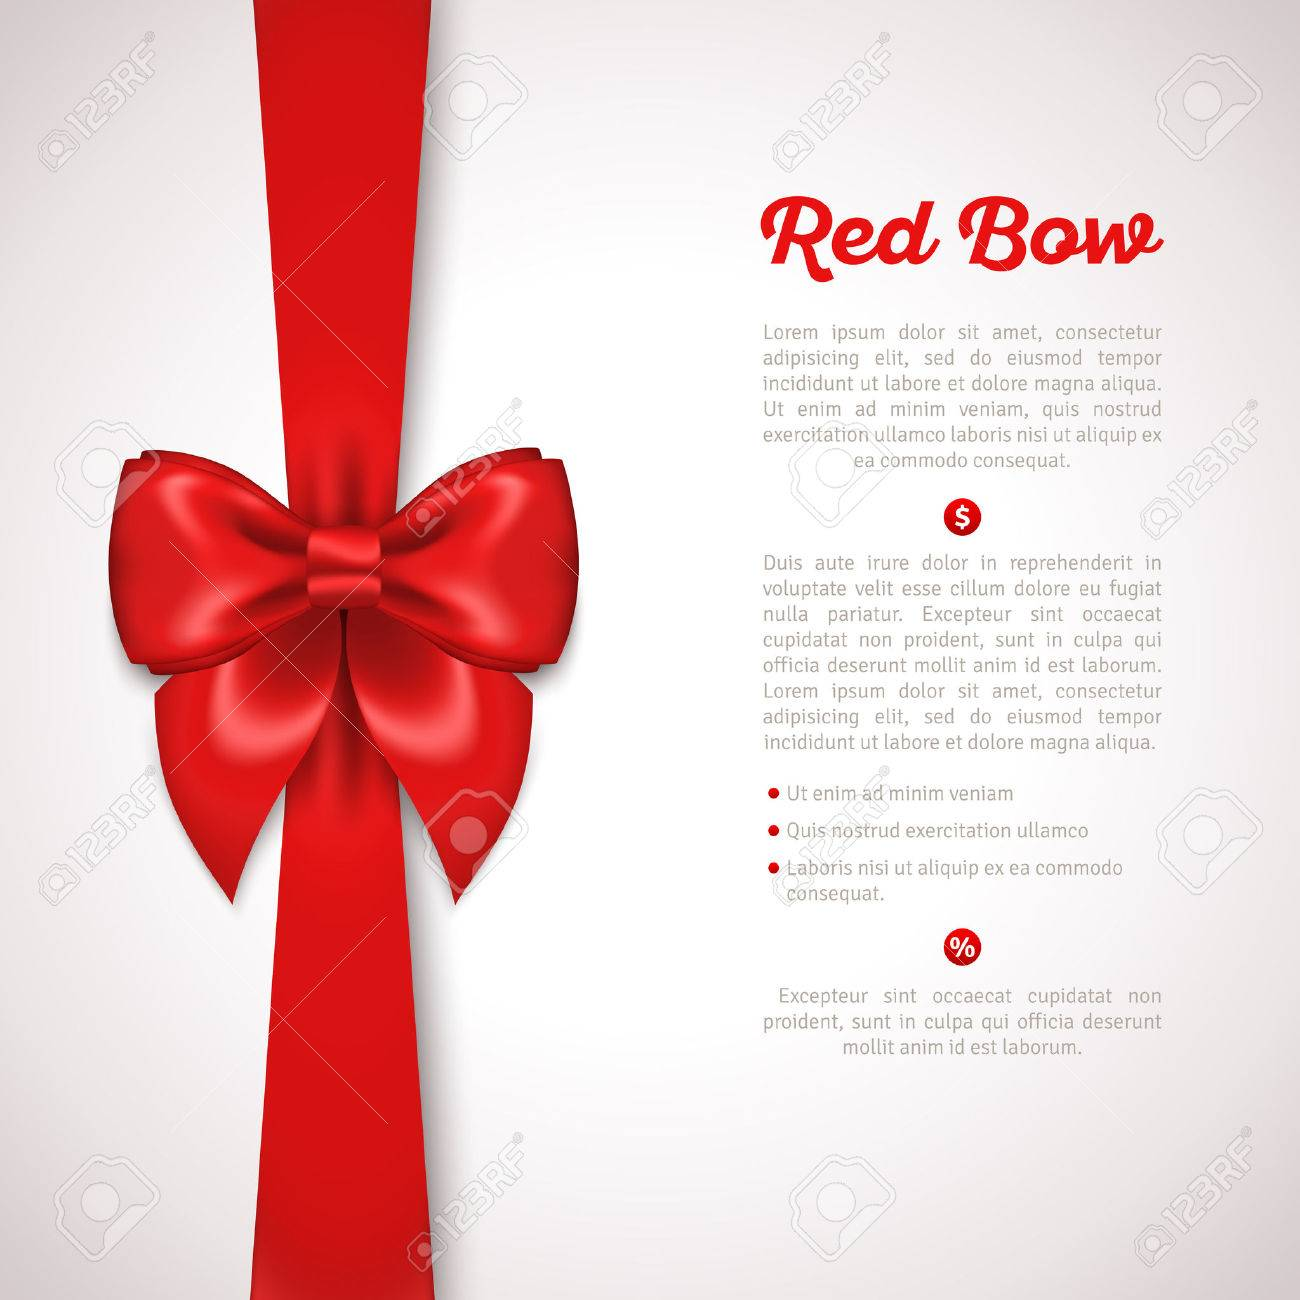 Red Ribbon with Satin Bow Isolated on White. Vector Illustration. Invitation Decorative Card Template, Voucher Design, Holiday Invitation Design. - 44249327